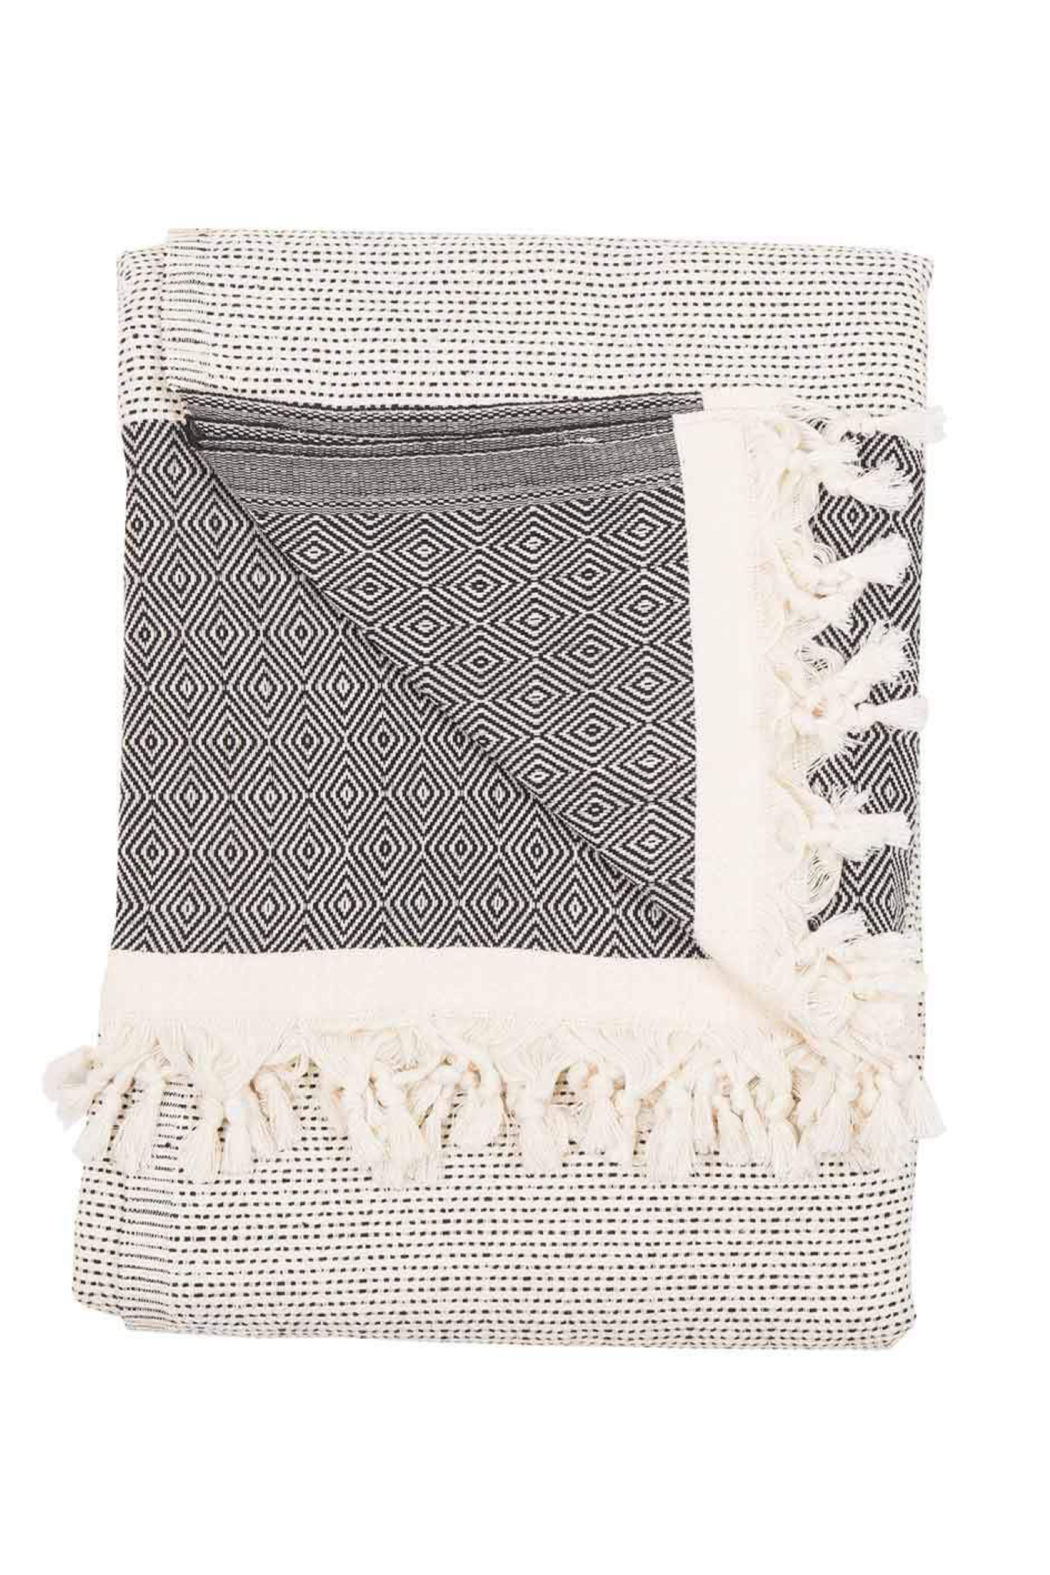 Pokoloko LINED DIAMOND BLANKET - Main Image